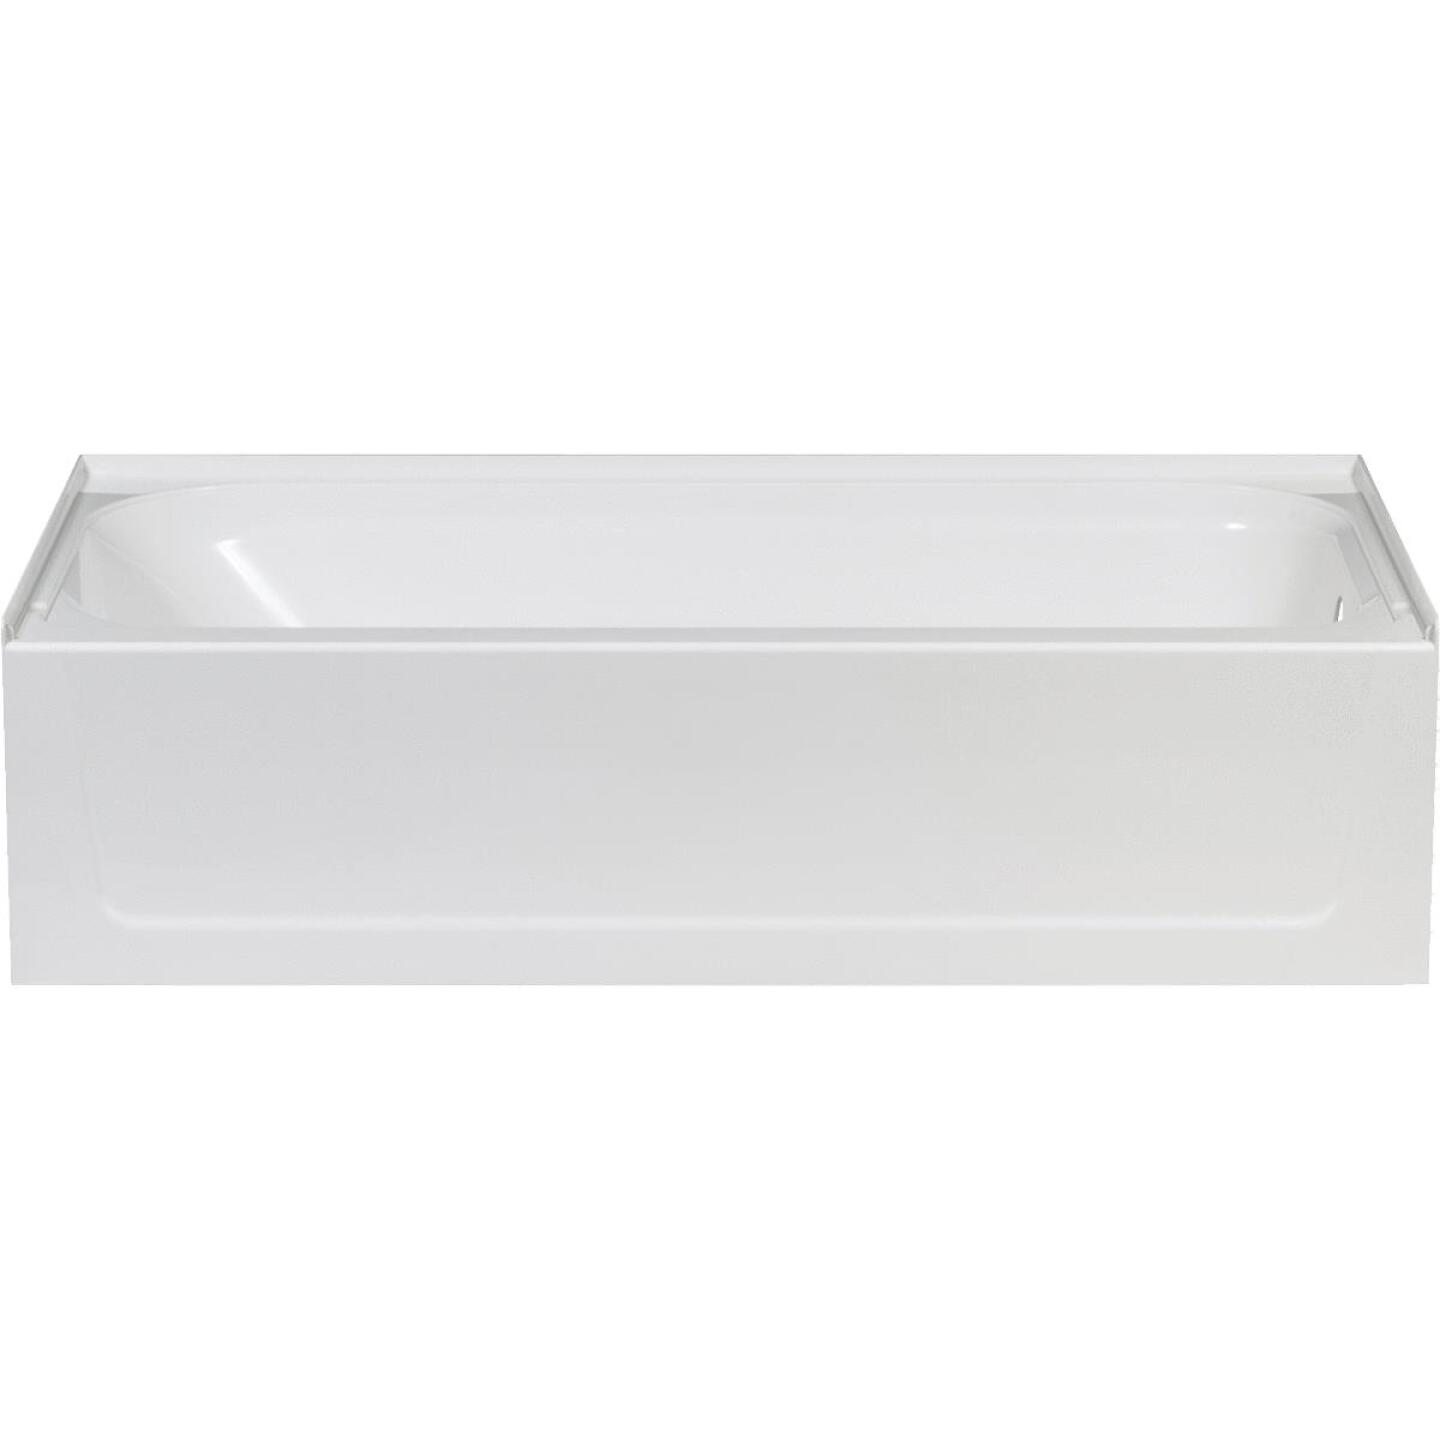 Mustee Topaz 60 In. L x 30 In. W x 16-1/2 In. D Right Drain Bathtub in White Image 1